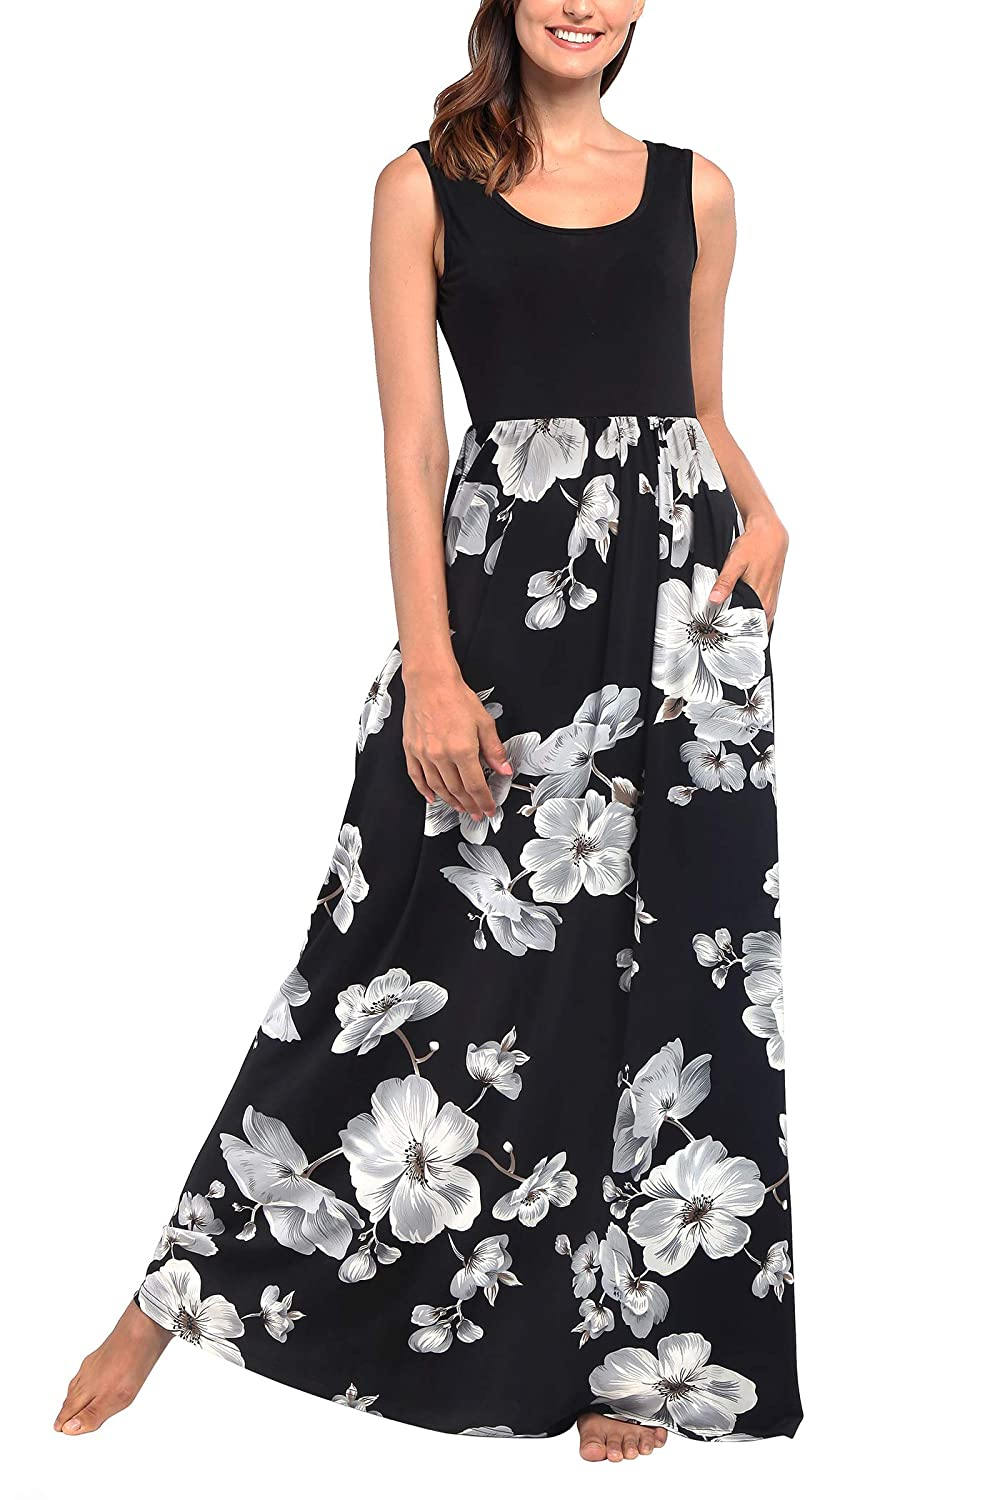 Black  White Floral Comila Women's Summer Sleeveless Floral Print Tank Long Maxi Dress with Pockets